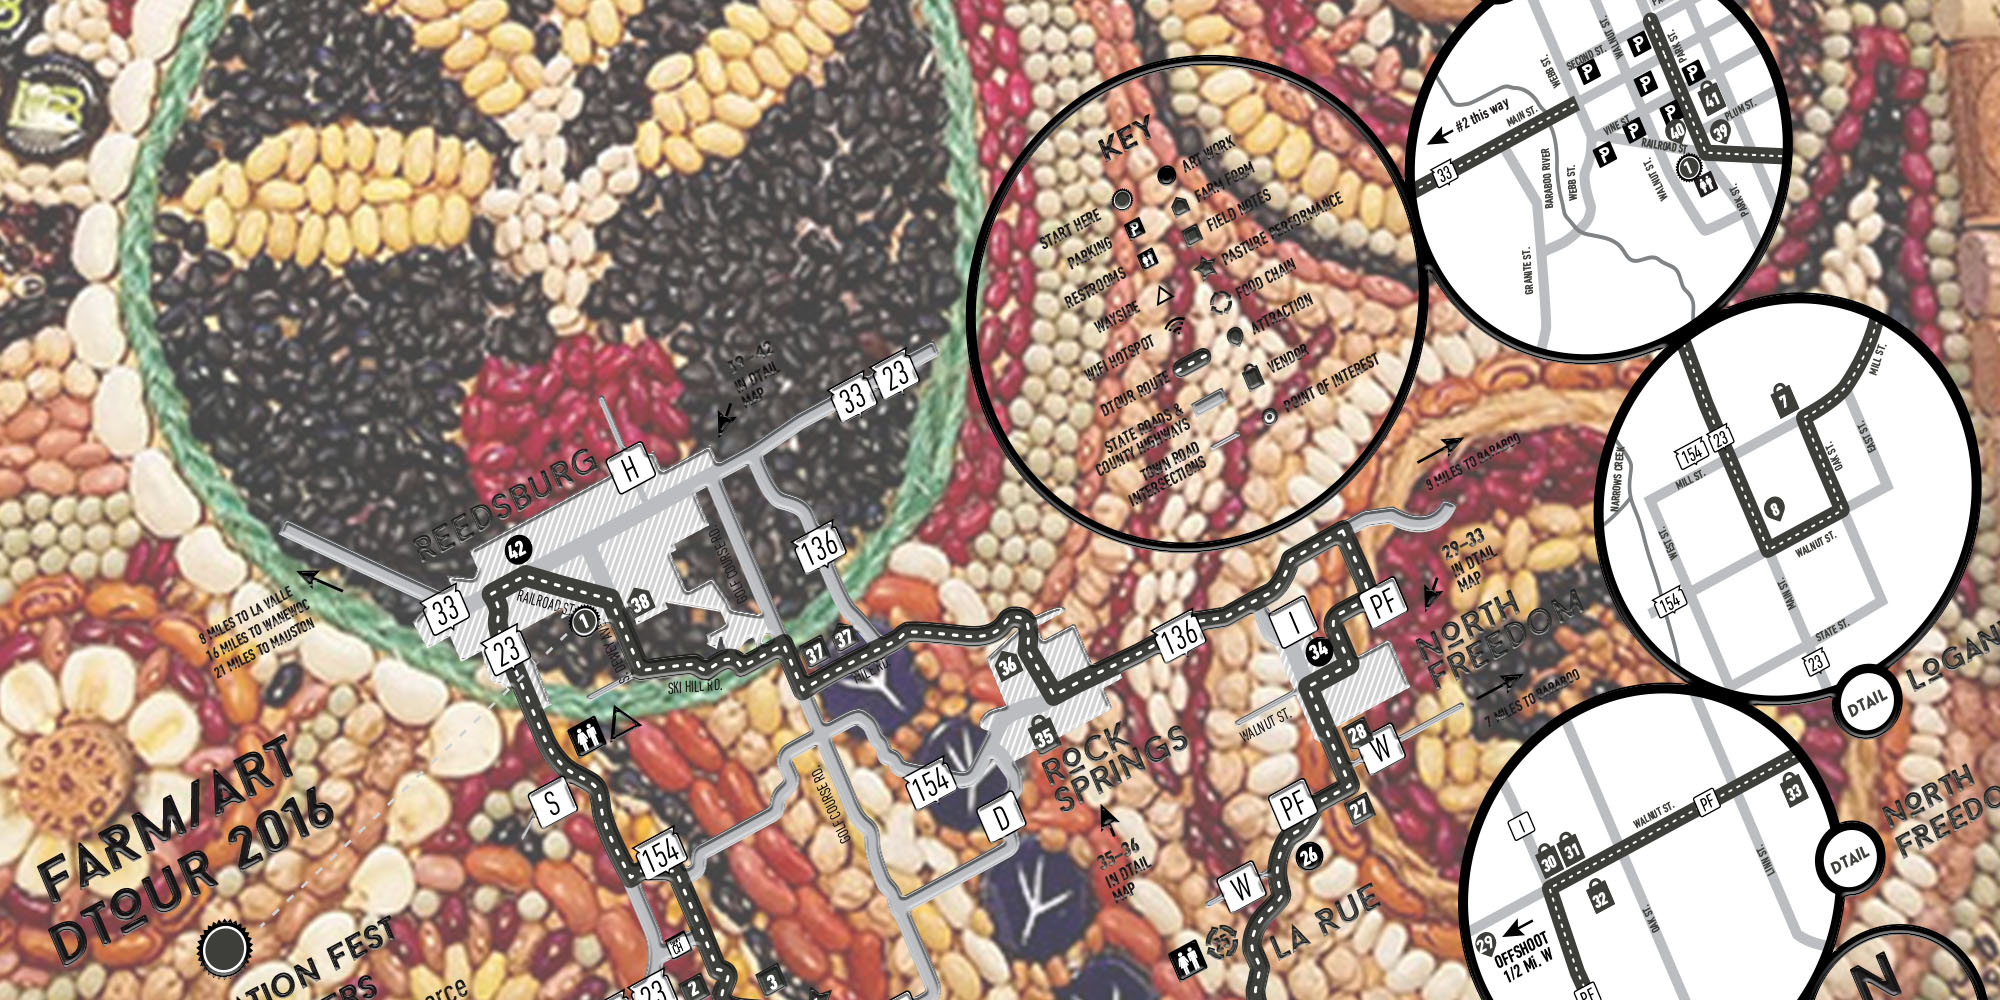 Baraboo artist Beth Persche's seed mosaic was among the pieces in 2016's Farm/Art DTour. Images courtesy Wormfarm Institute, illustration by Scott Gordon.